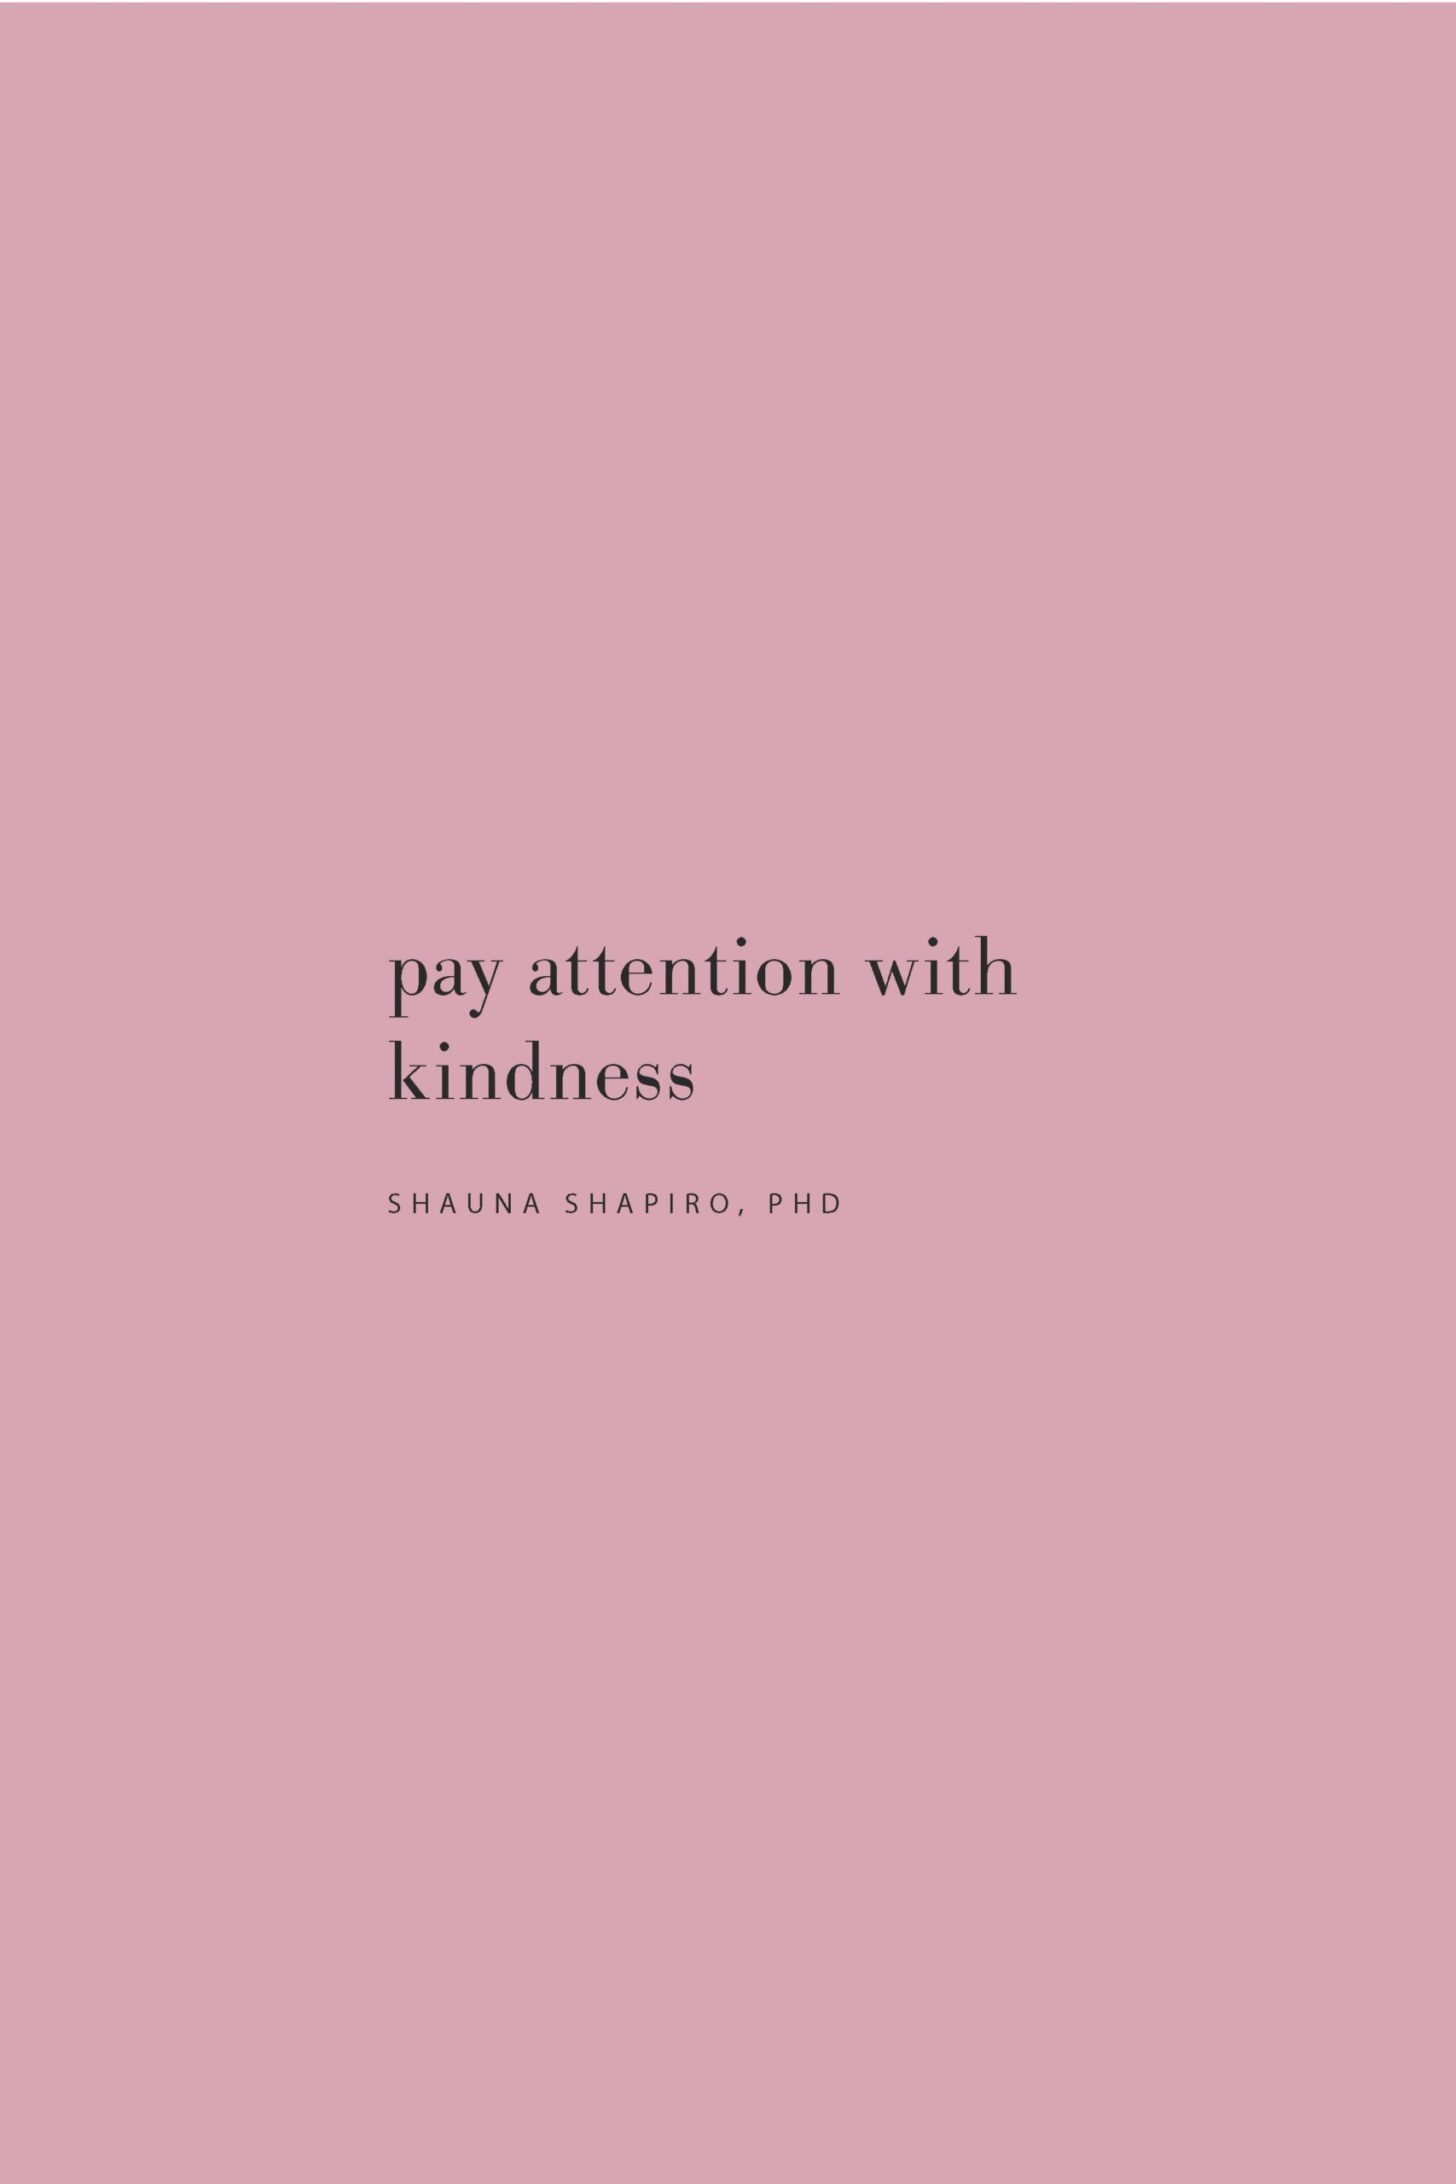 Quote on paying attention with kindness by Shauna Shapiro, PhD on the Feel Good Effect Podcast #realfoodwholelife #feelgoodeffectpodcast #selfcarequote #motivationalquote #inspirationalquote #positivityquote #selfkindnessquote #selfcompassionquote #mindfulnessquote